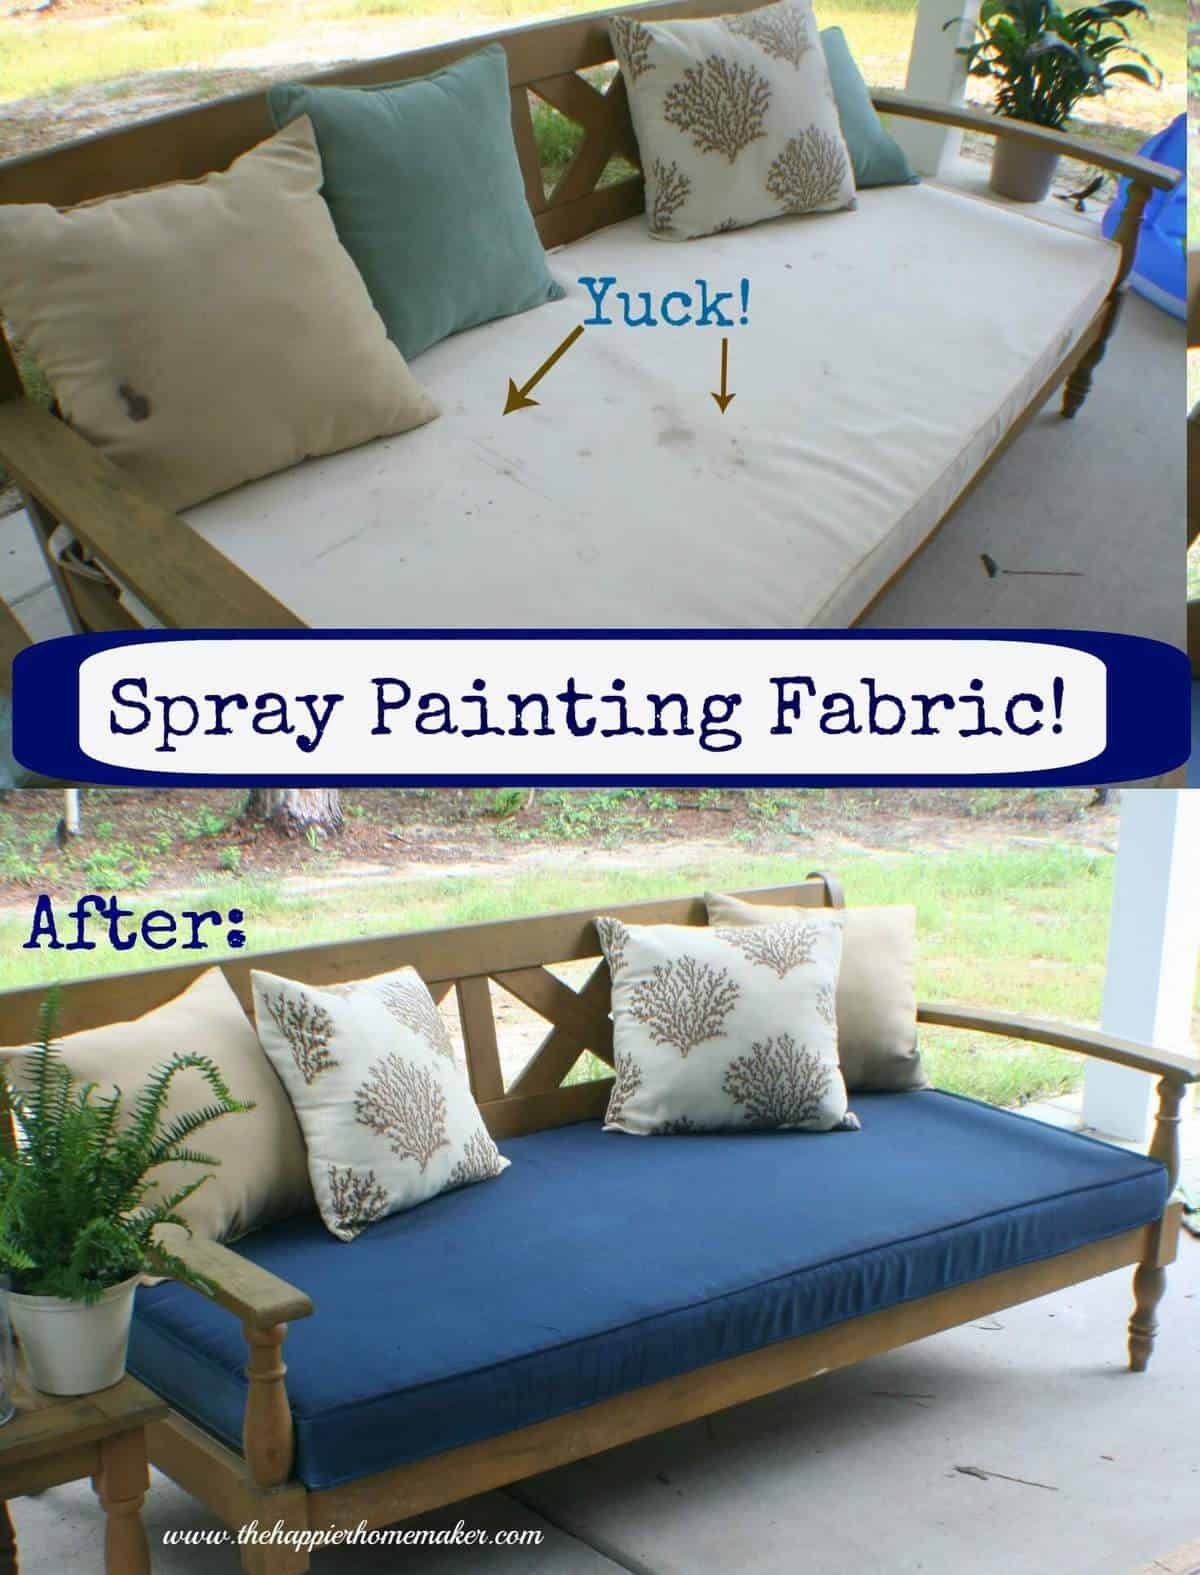 Spray Painting Fabric